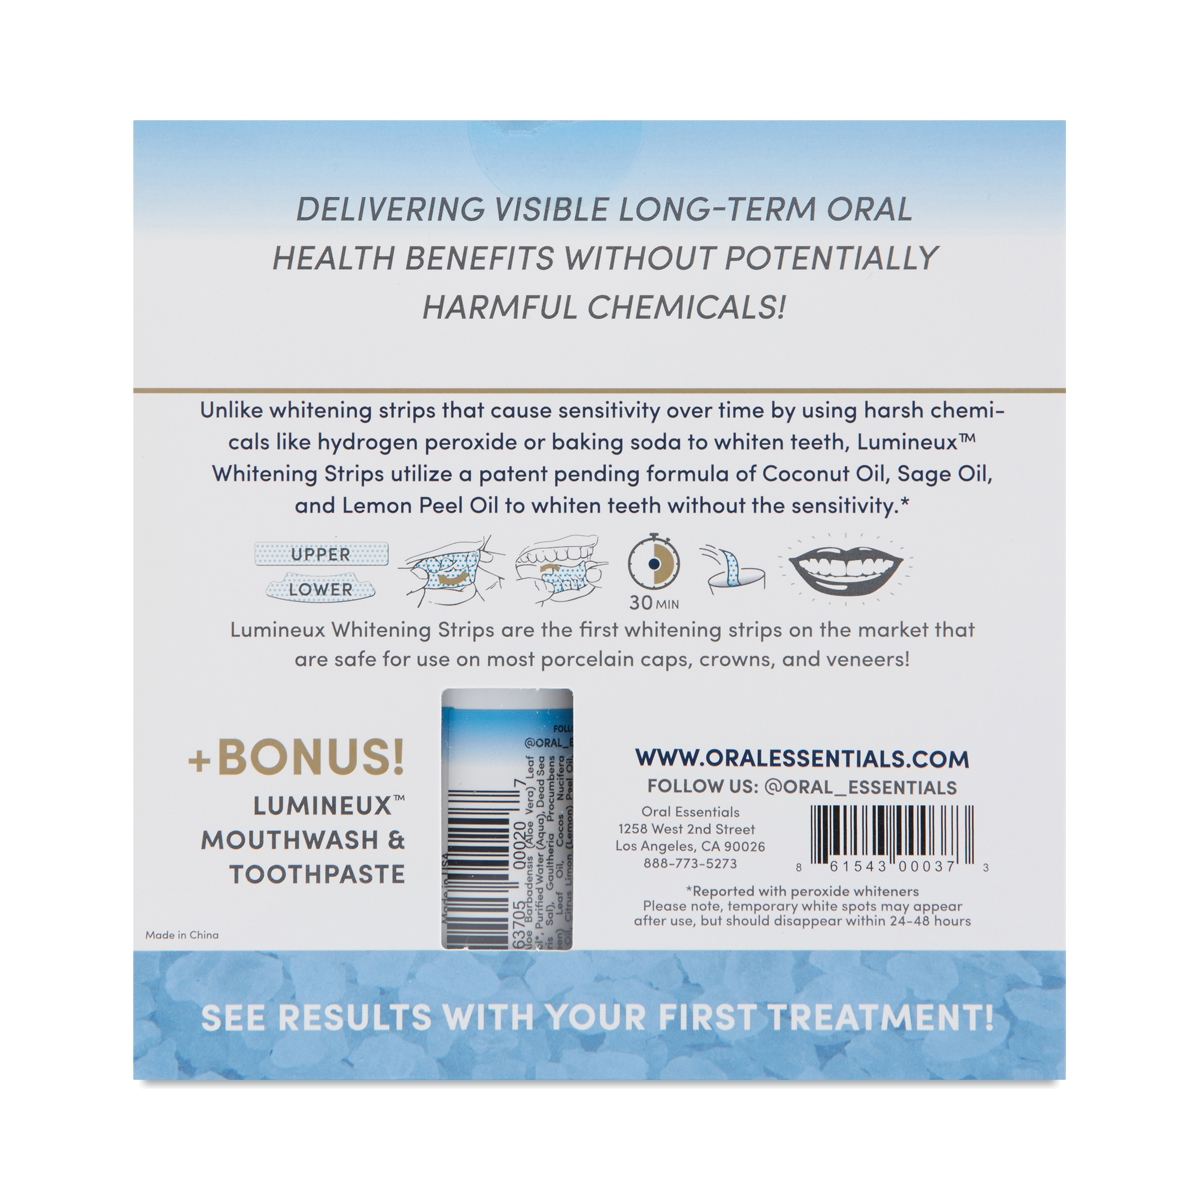 Oral Essentials Lumineux Whitening Kit Thrive Market